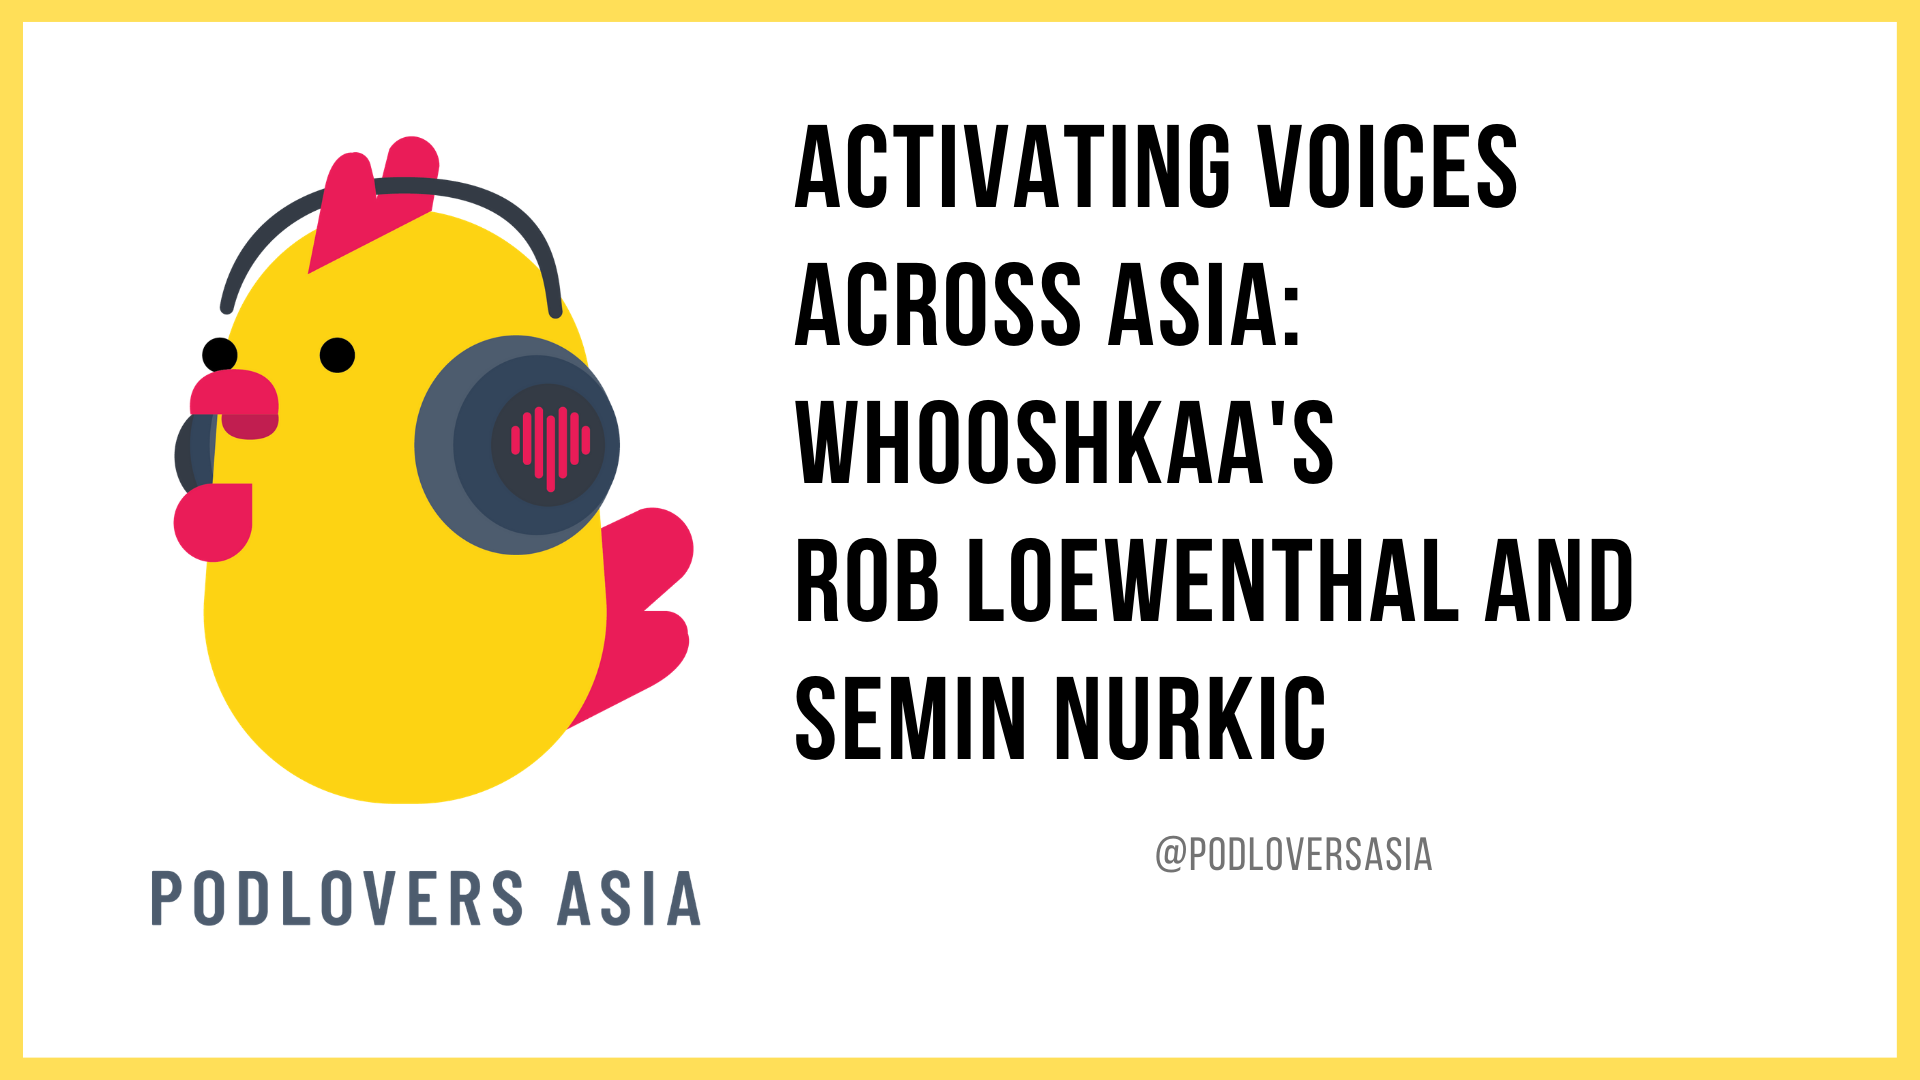 Activating voices across Asia with Whooshkaa's Rob Loewenthal and Semin Nurkic